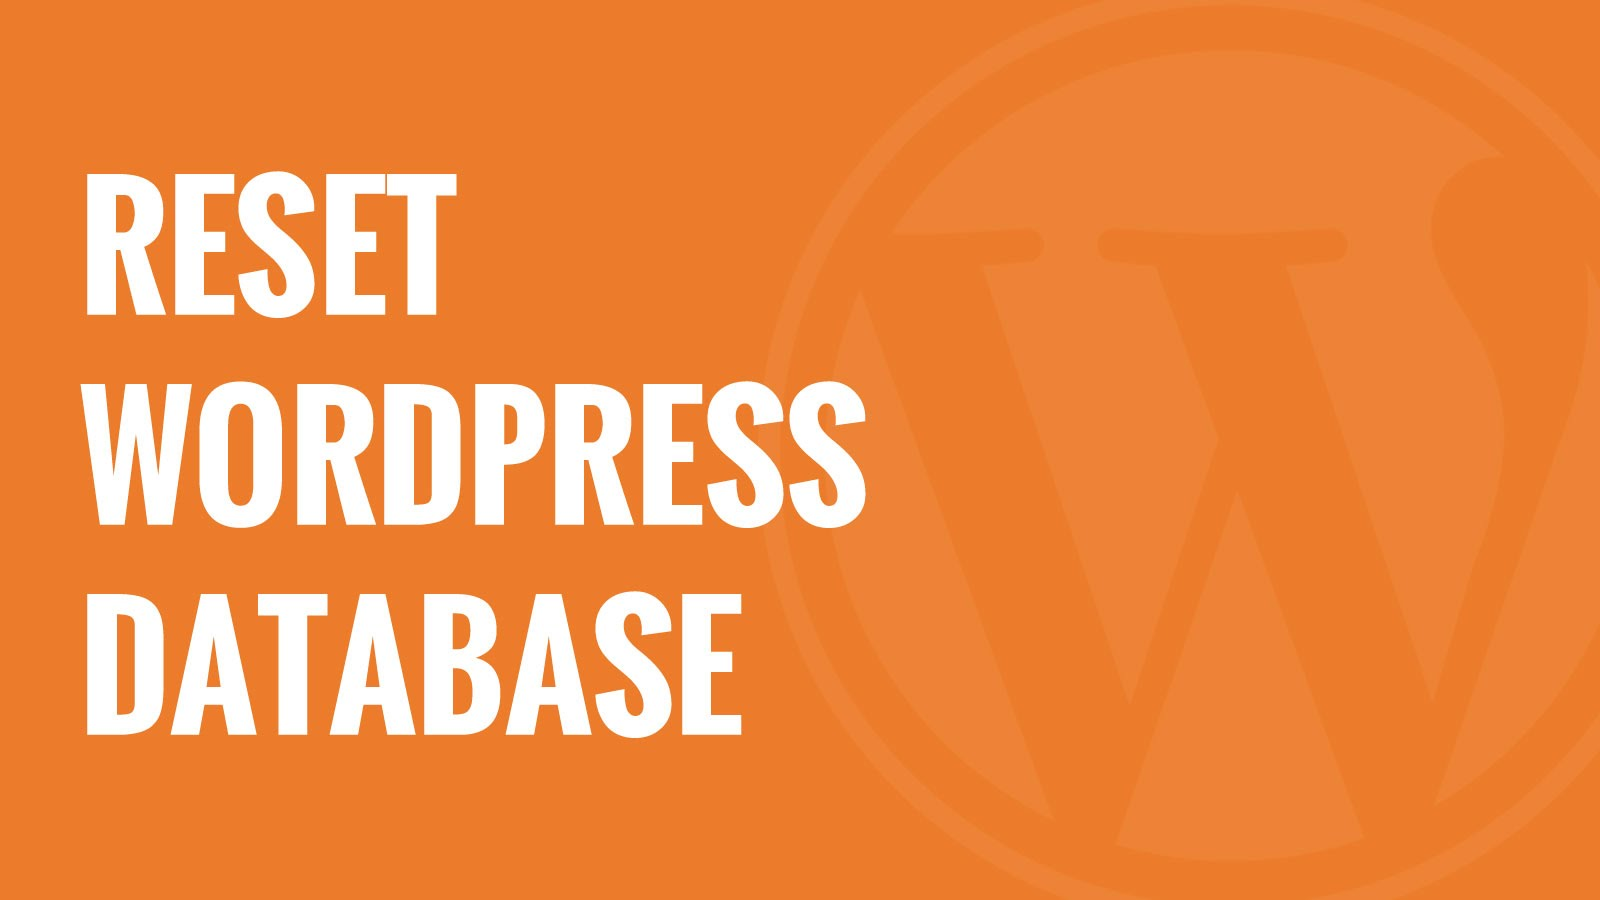 How To Reset WordPress Database To Default